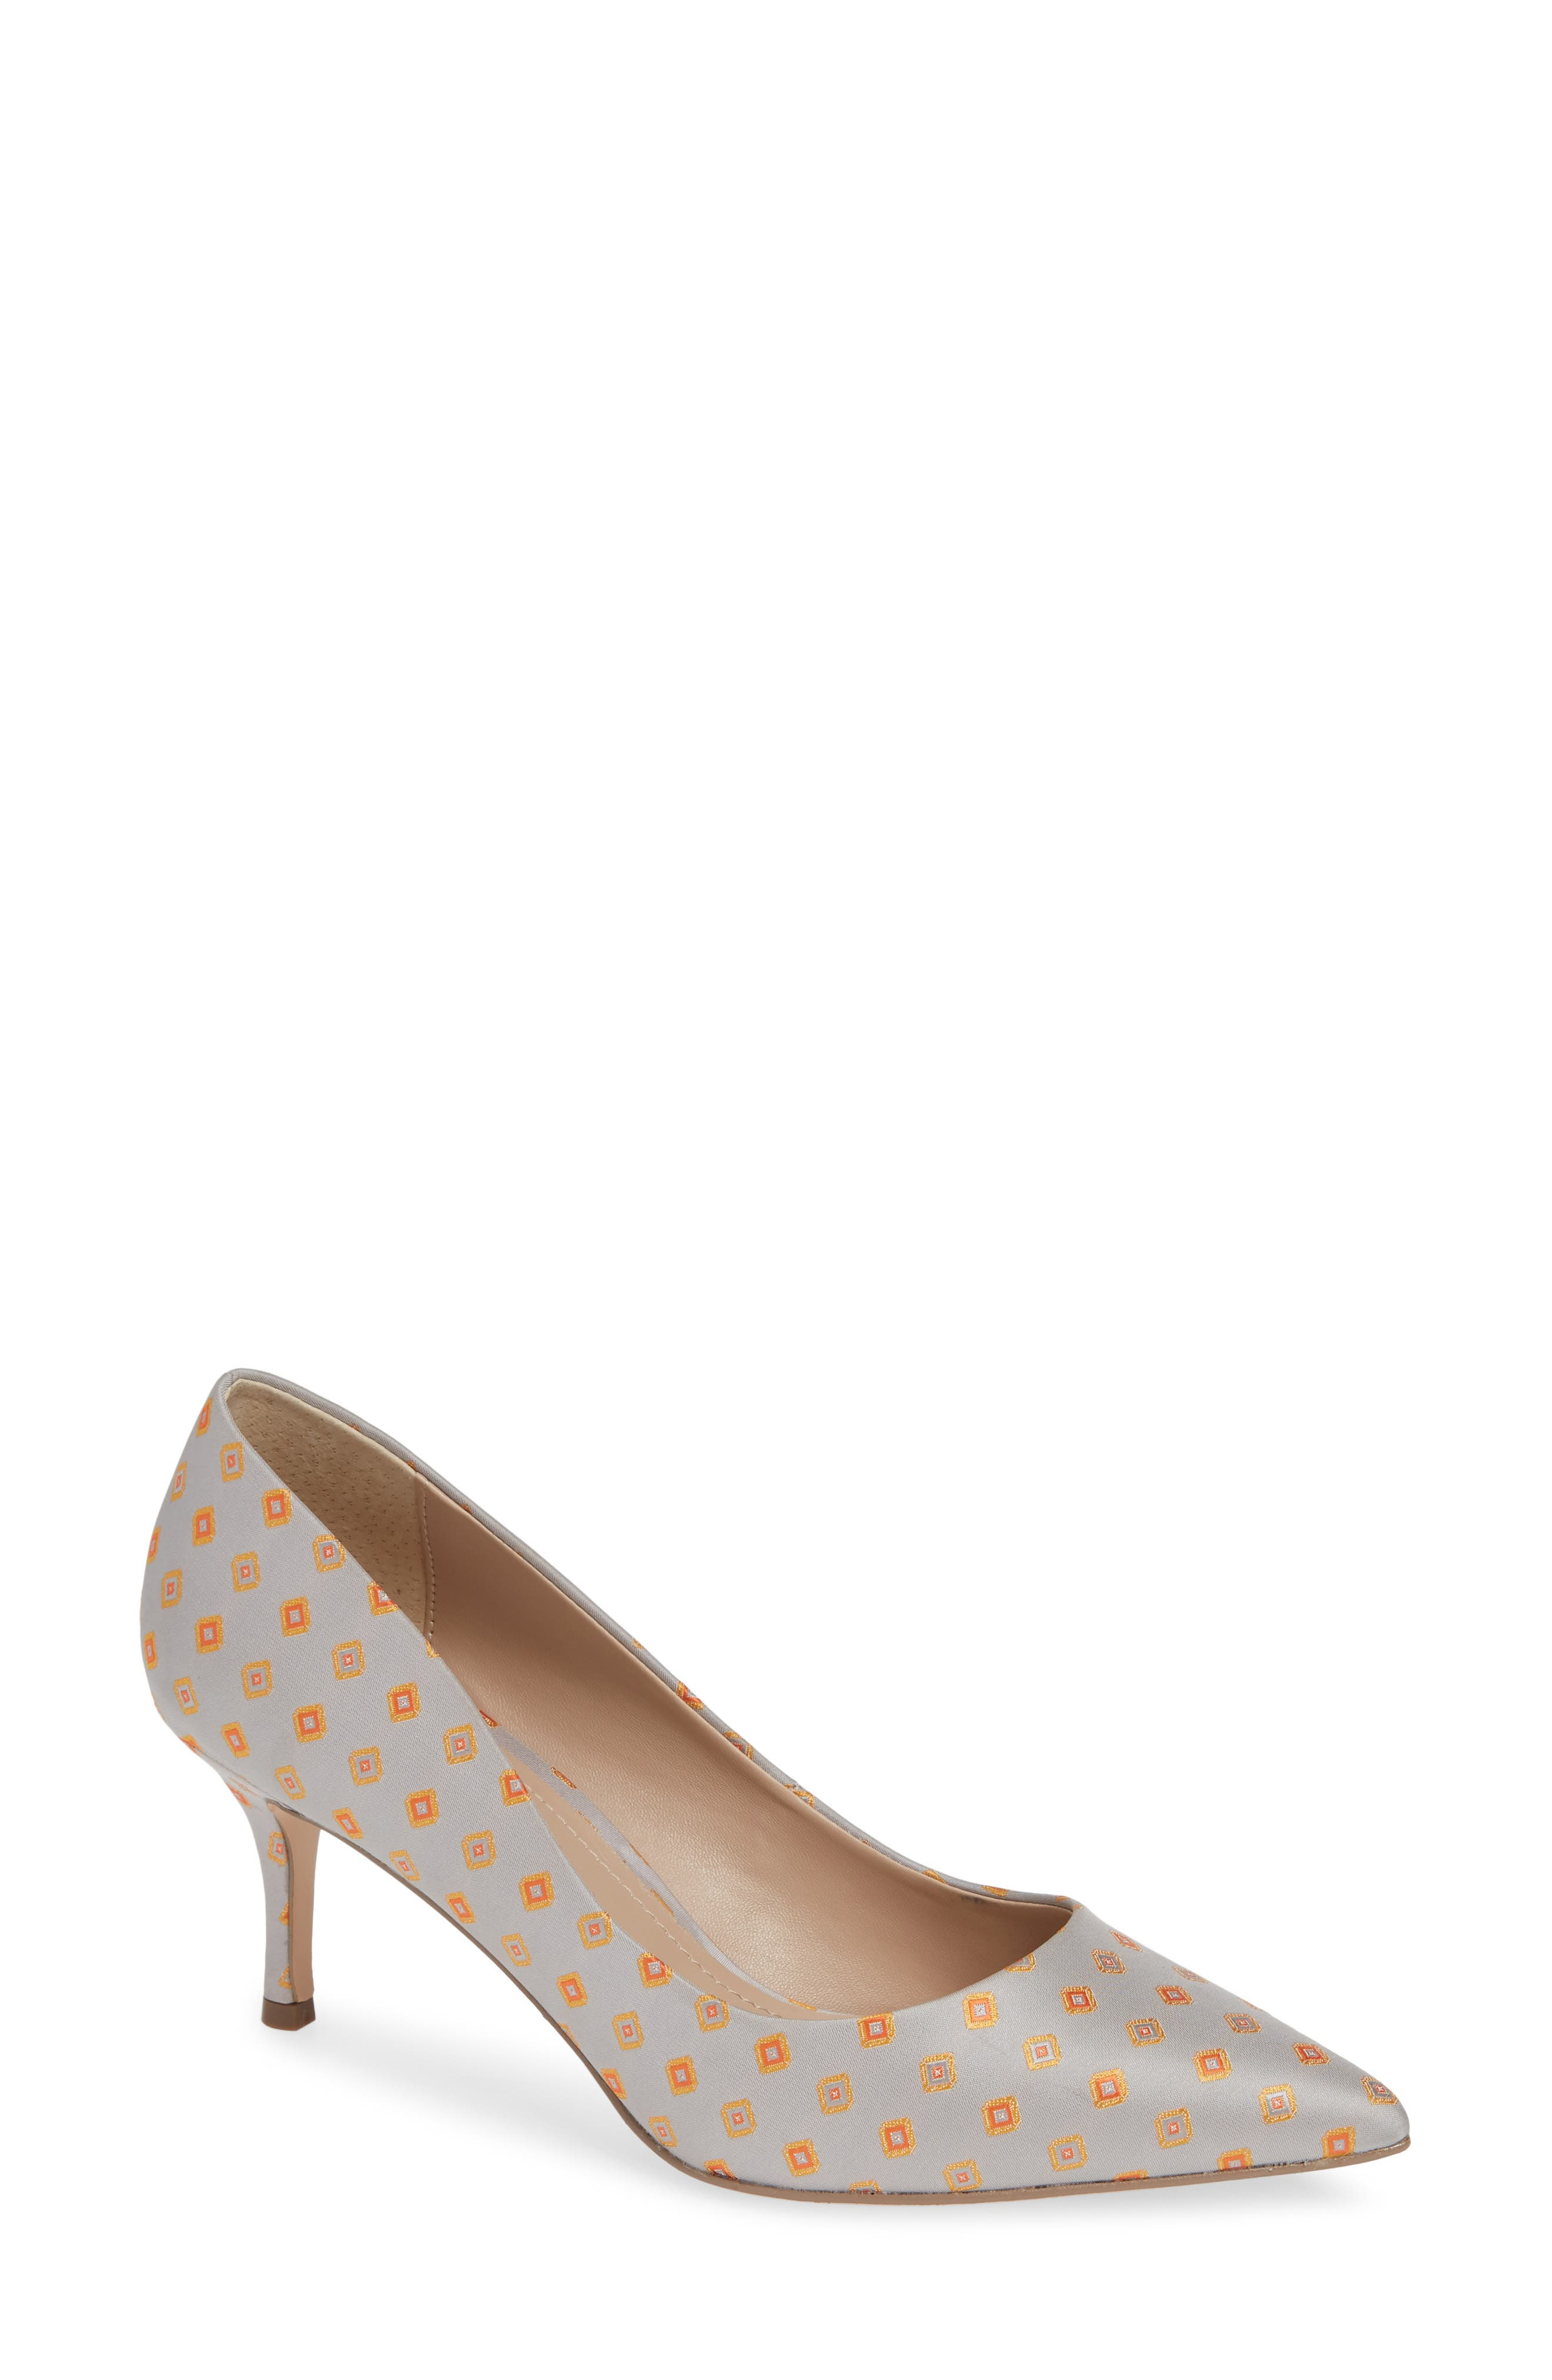 2425411a4d Charles By Charles David All Women | Nordstrom